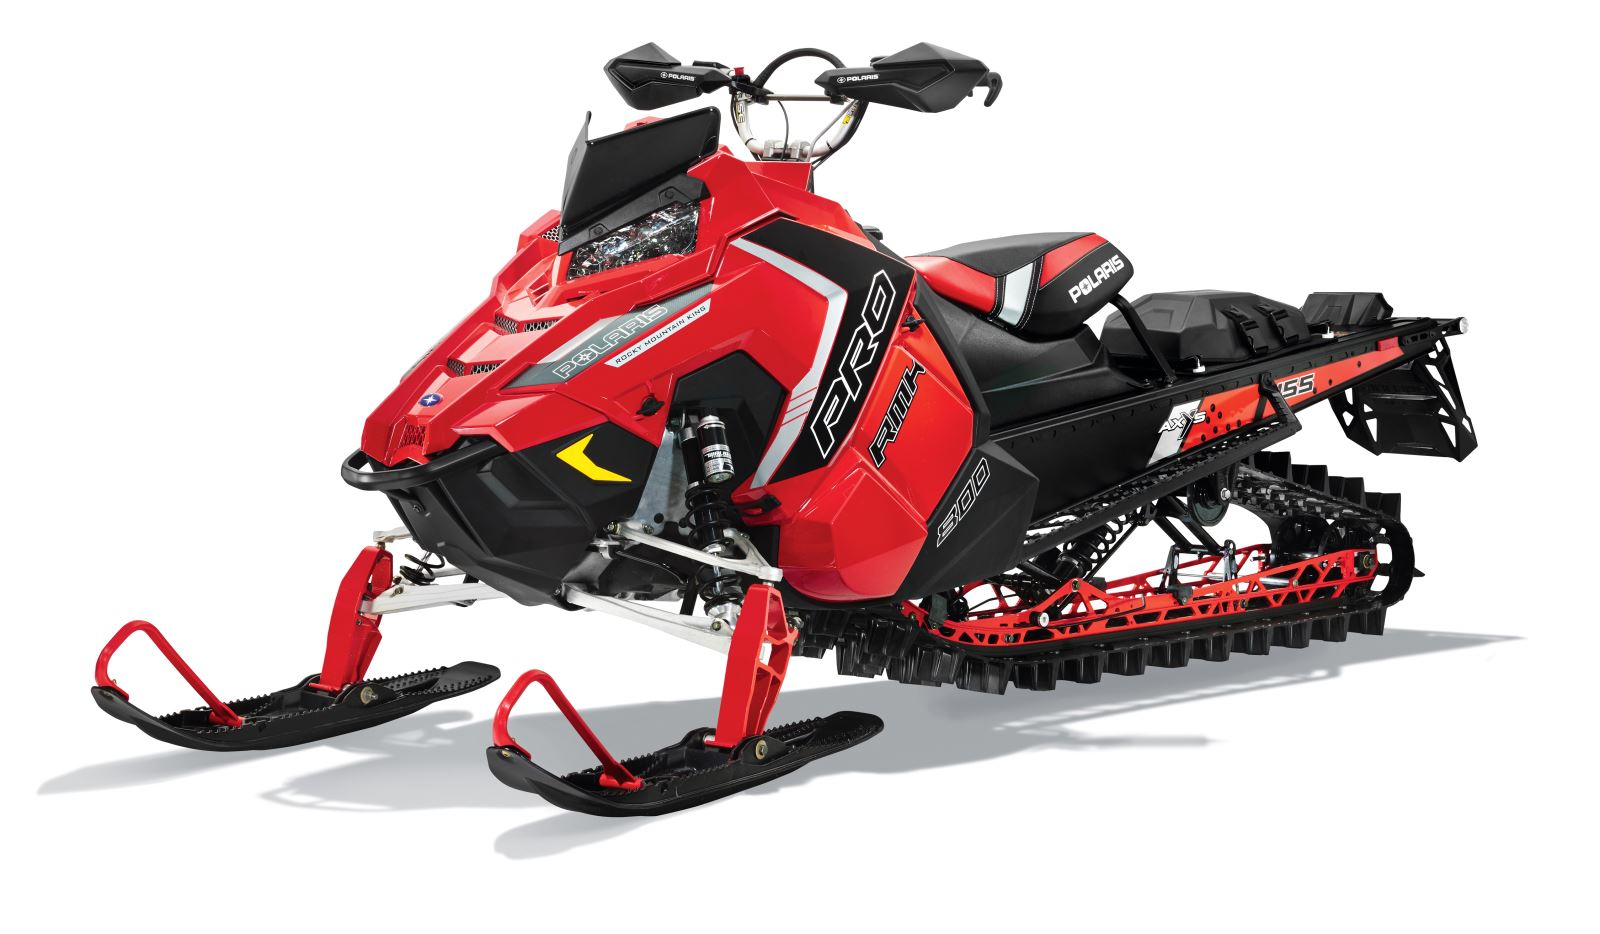 Watch For The March Issue Of Snowest Magazine A Full Writeup On 2016 Mountain Sleds